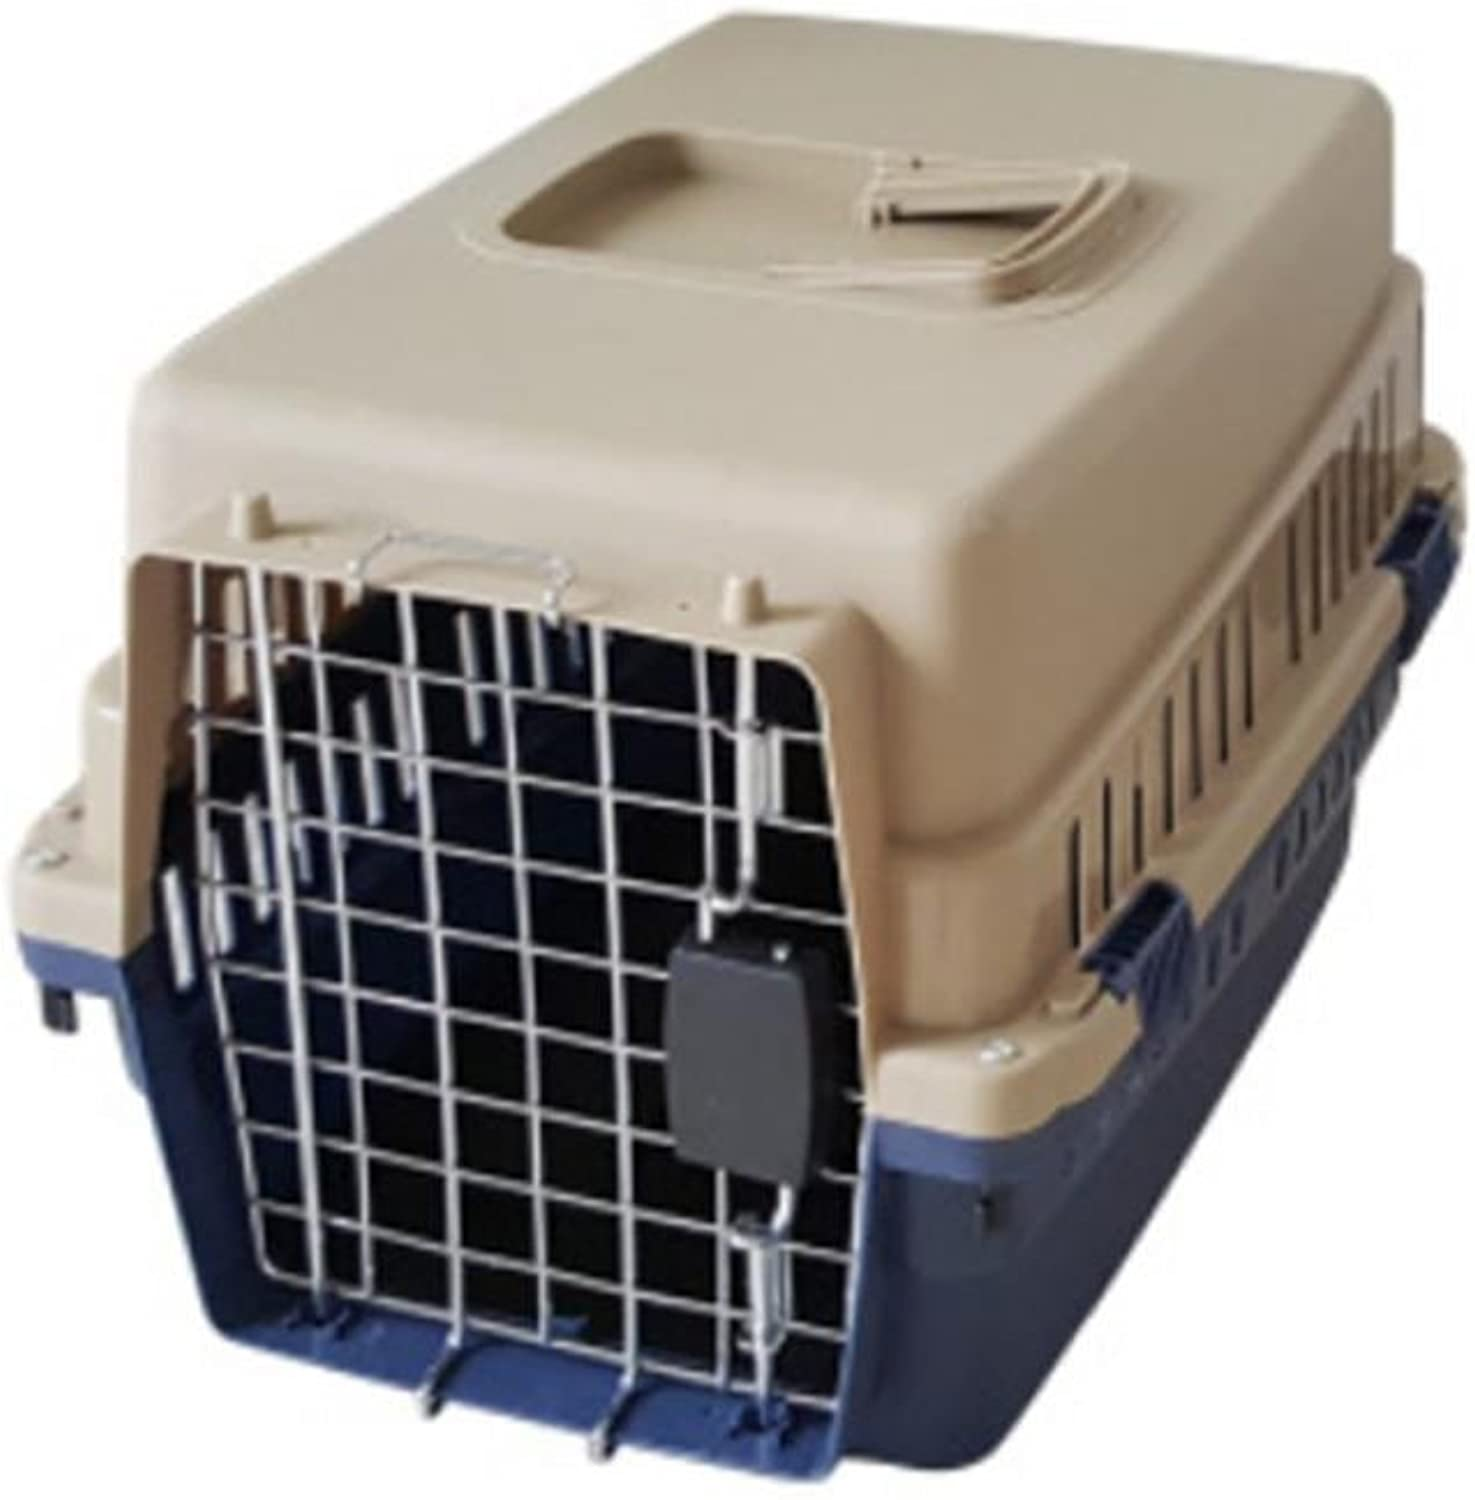 OOFWY Pet Box   Cat And Dog Dedicated Aviation Box   Portable Travel Box  Pet Nest   Quality PVC Resin Material , B1